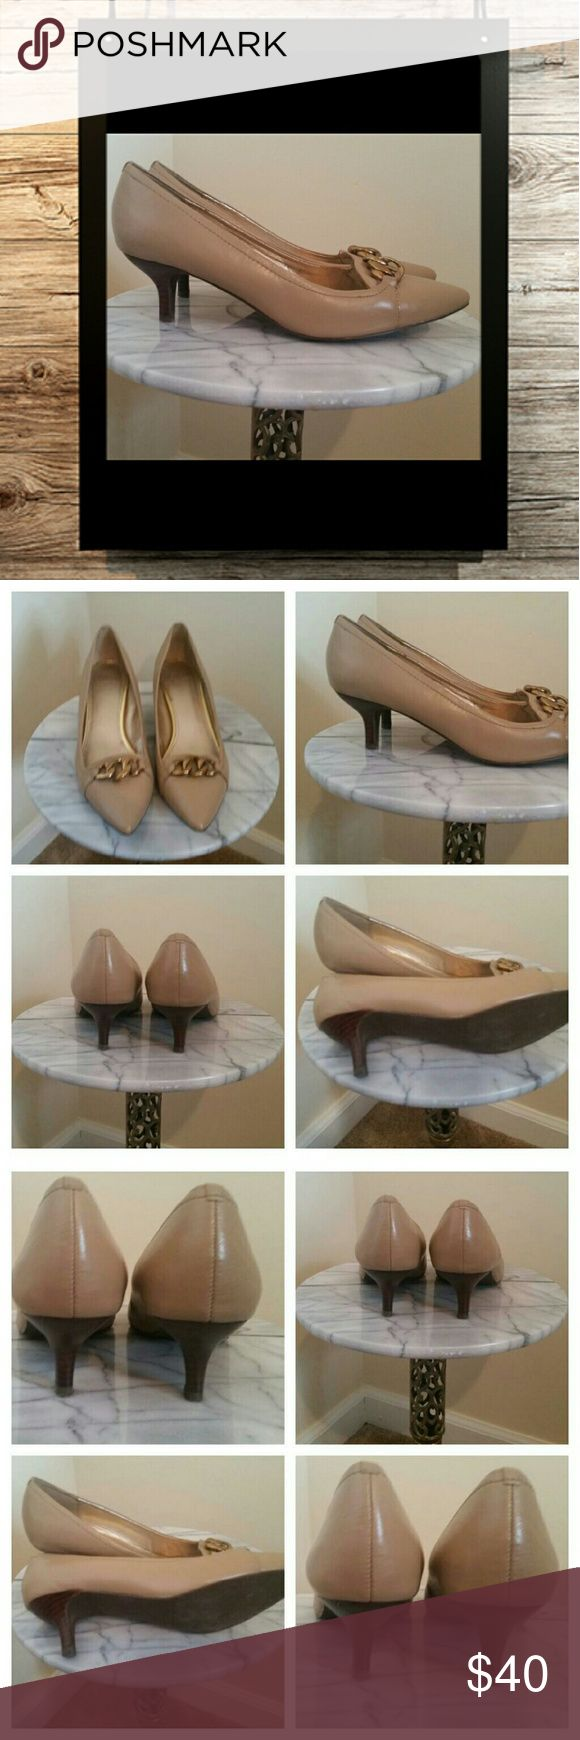 Joan & David pump size 7.5 M Tan sand colored  kitten heel pump by Joan & David size. 7.5. Vintage appeal. Slight scuffing on toes as seen in photos. Metal chain slightly discolored. All in all great leather shoe. Joan & David Shoes Heels